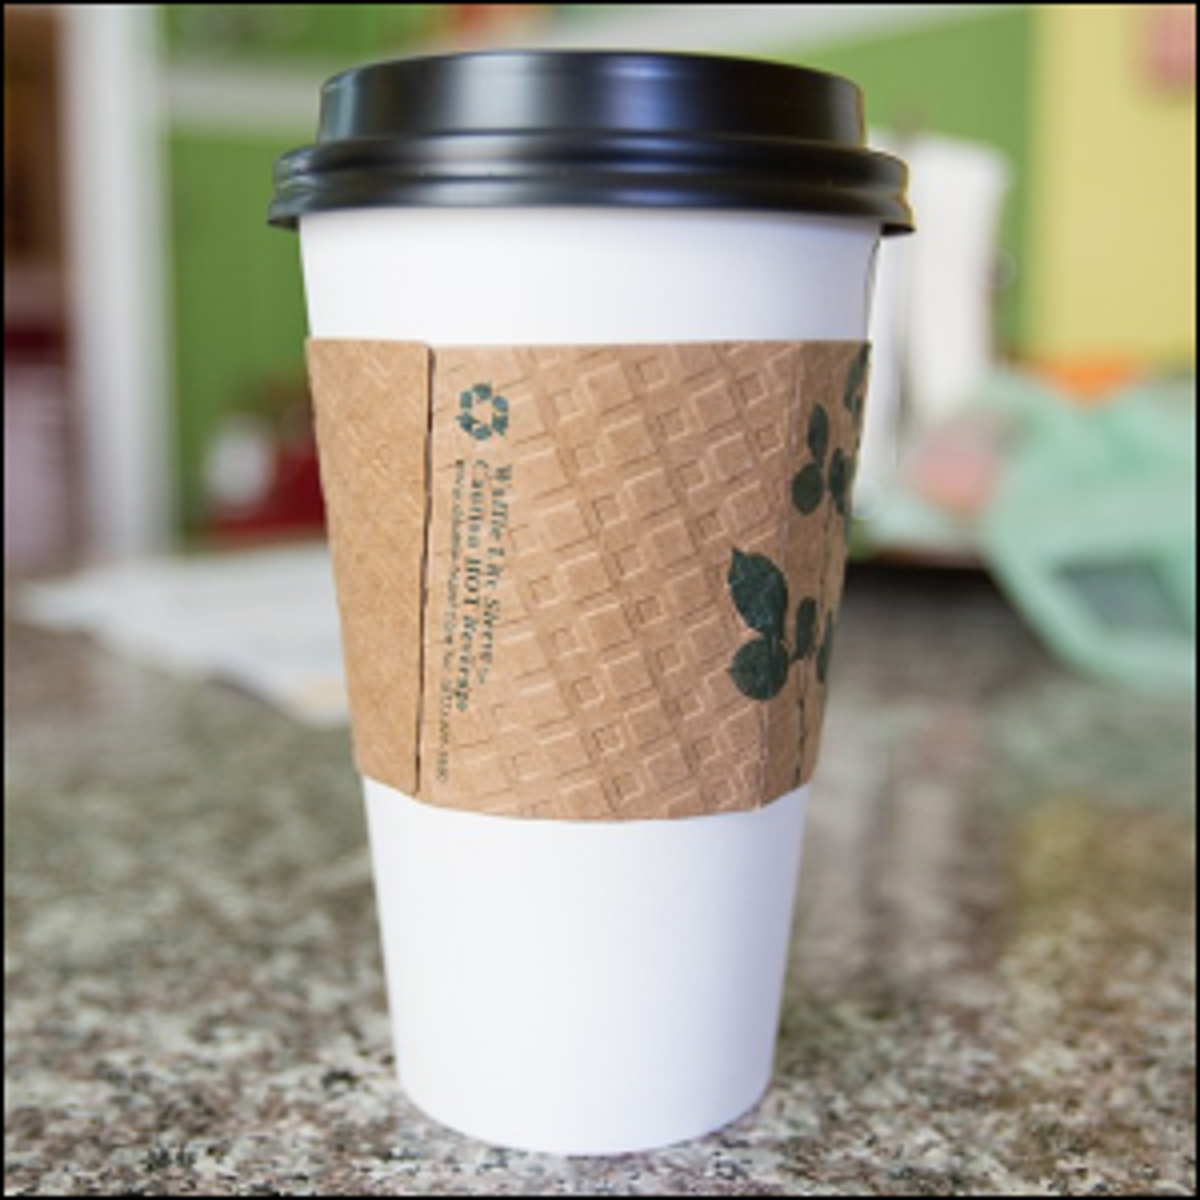 An example of a coffee cup sleeve, called a zarf.